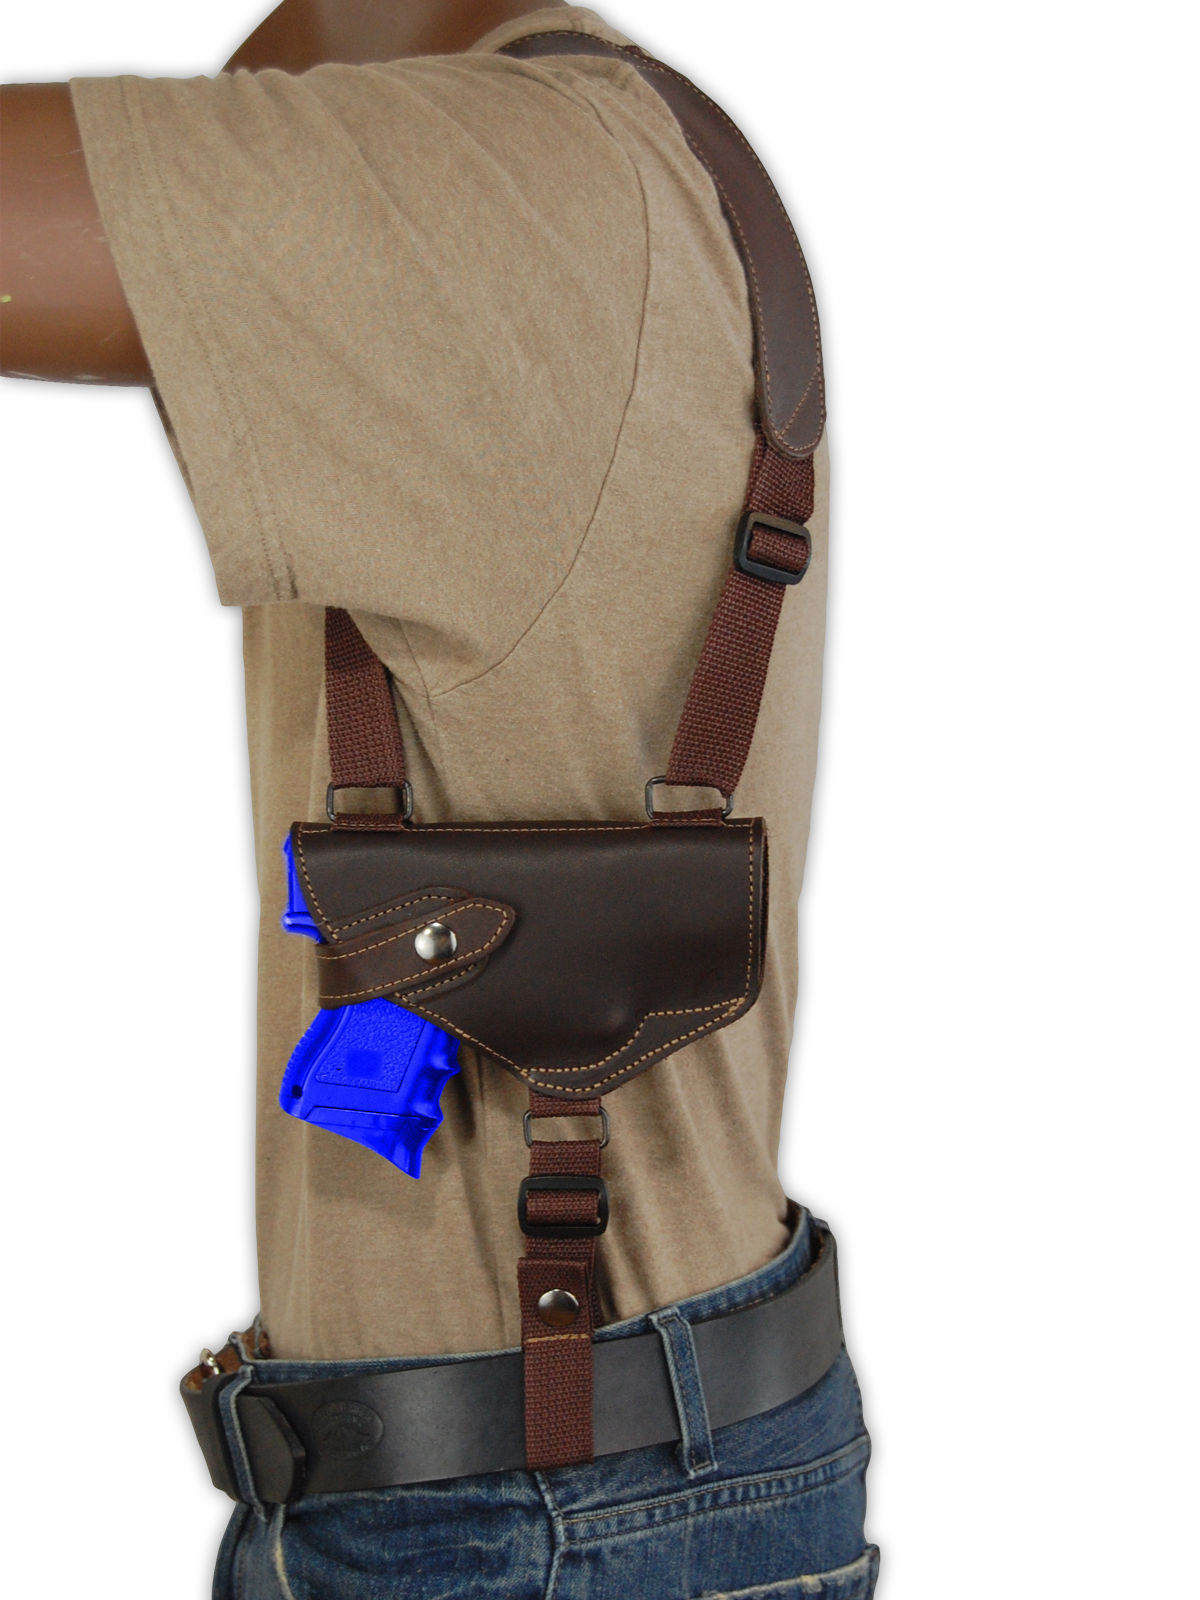 NEW Barsony Horizontal Brown Leather Shoulder Holster Ruger Compact 9mm 40 45